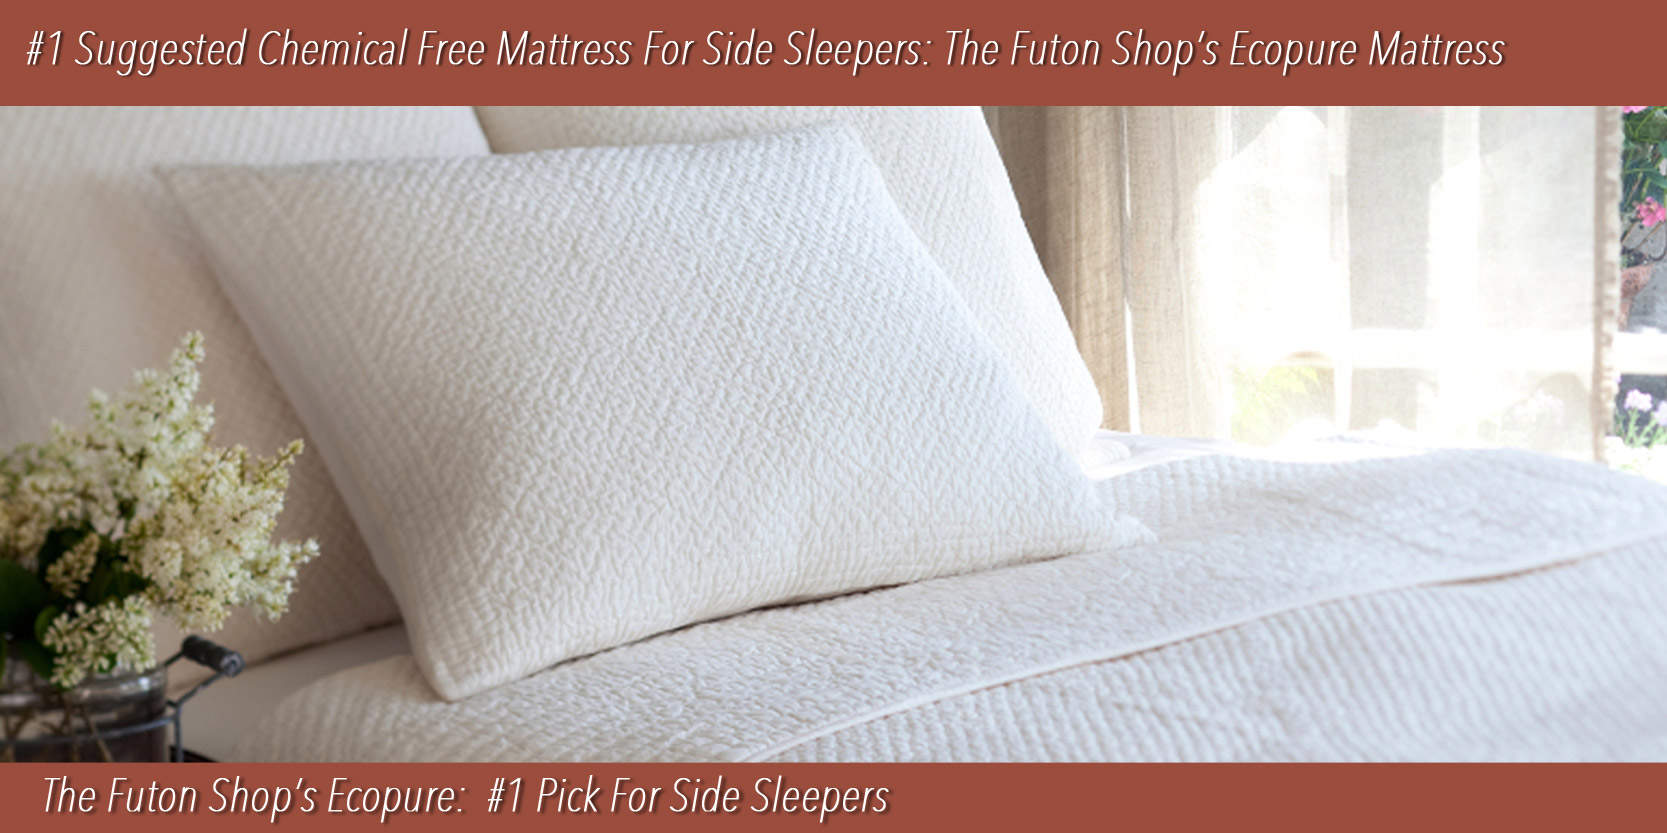 Healthy_mattress_suggesstion_for_side_sleeper